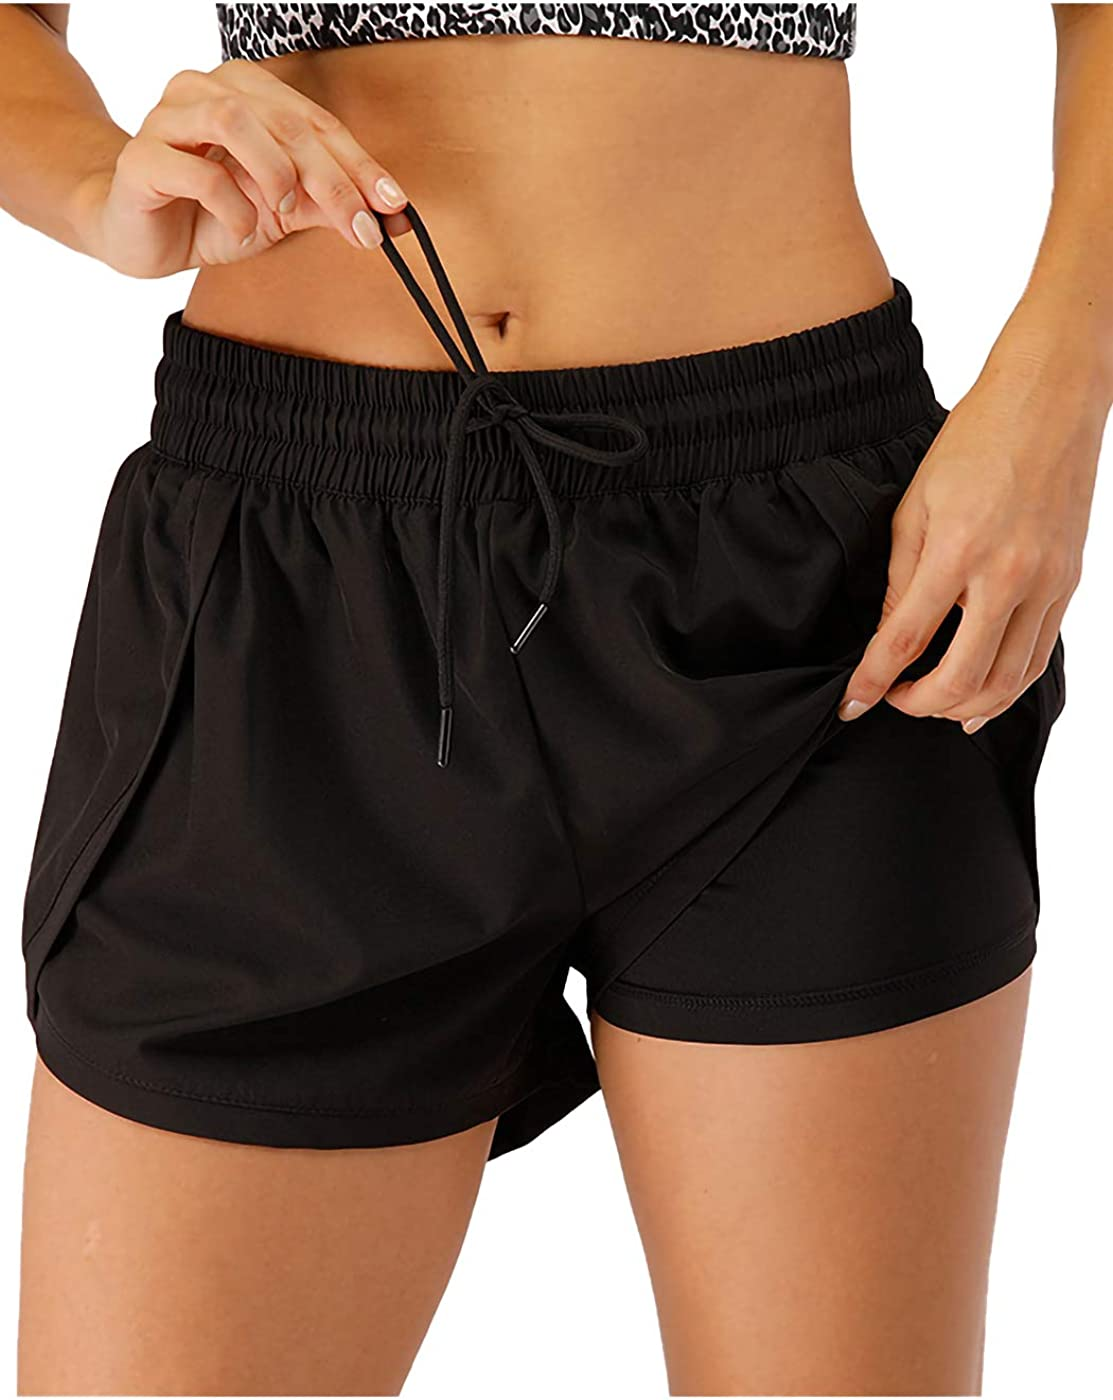 Anna-Kaci Womens Running Shorts Fitness Workout Athletic Shorts with Pockets